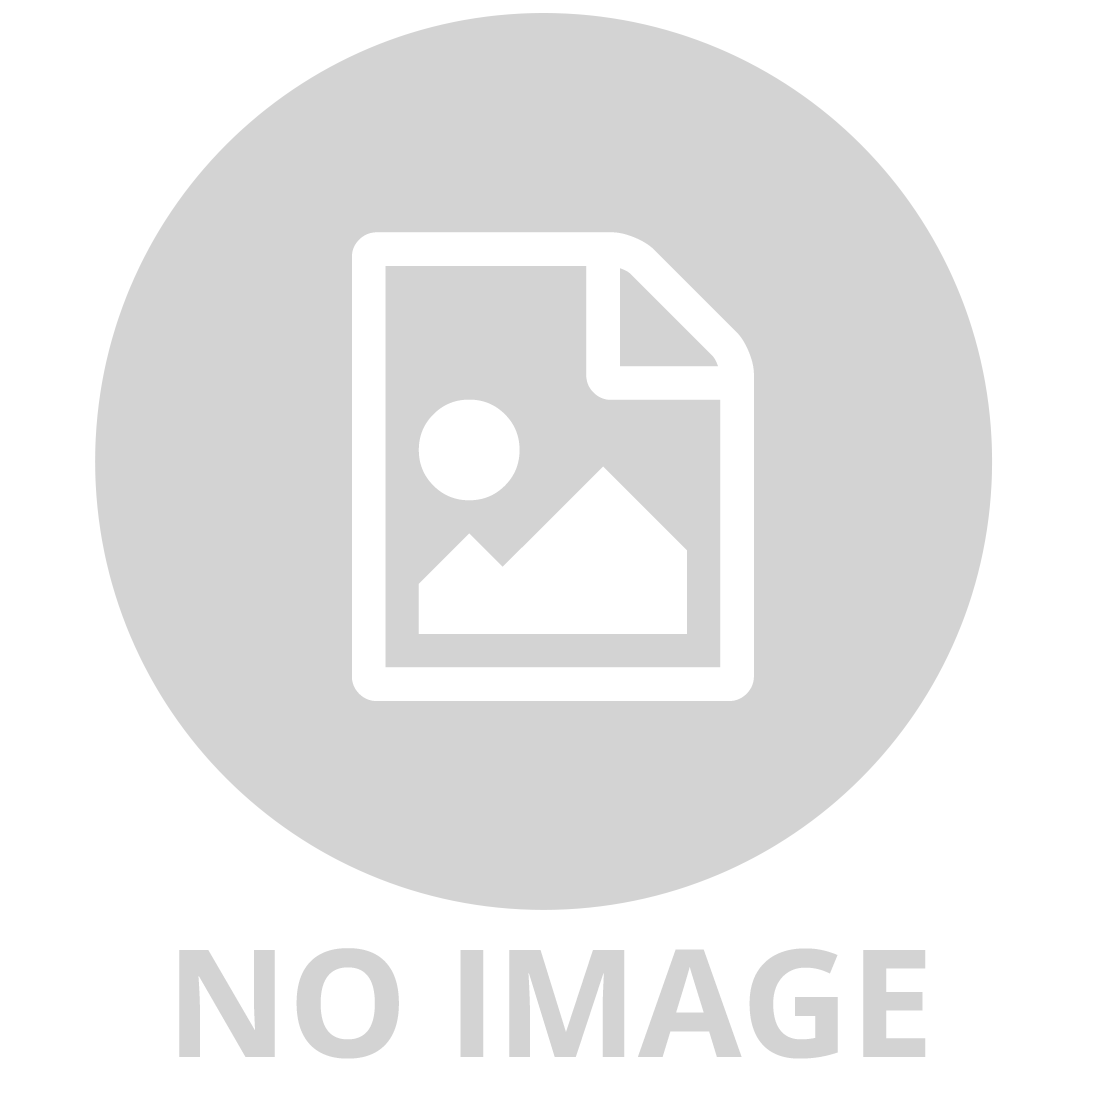 LEGO NINJAGO 71701 KAI'S FIRE DRAGON